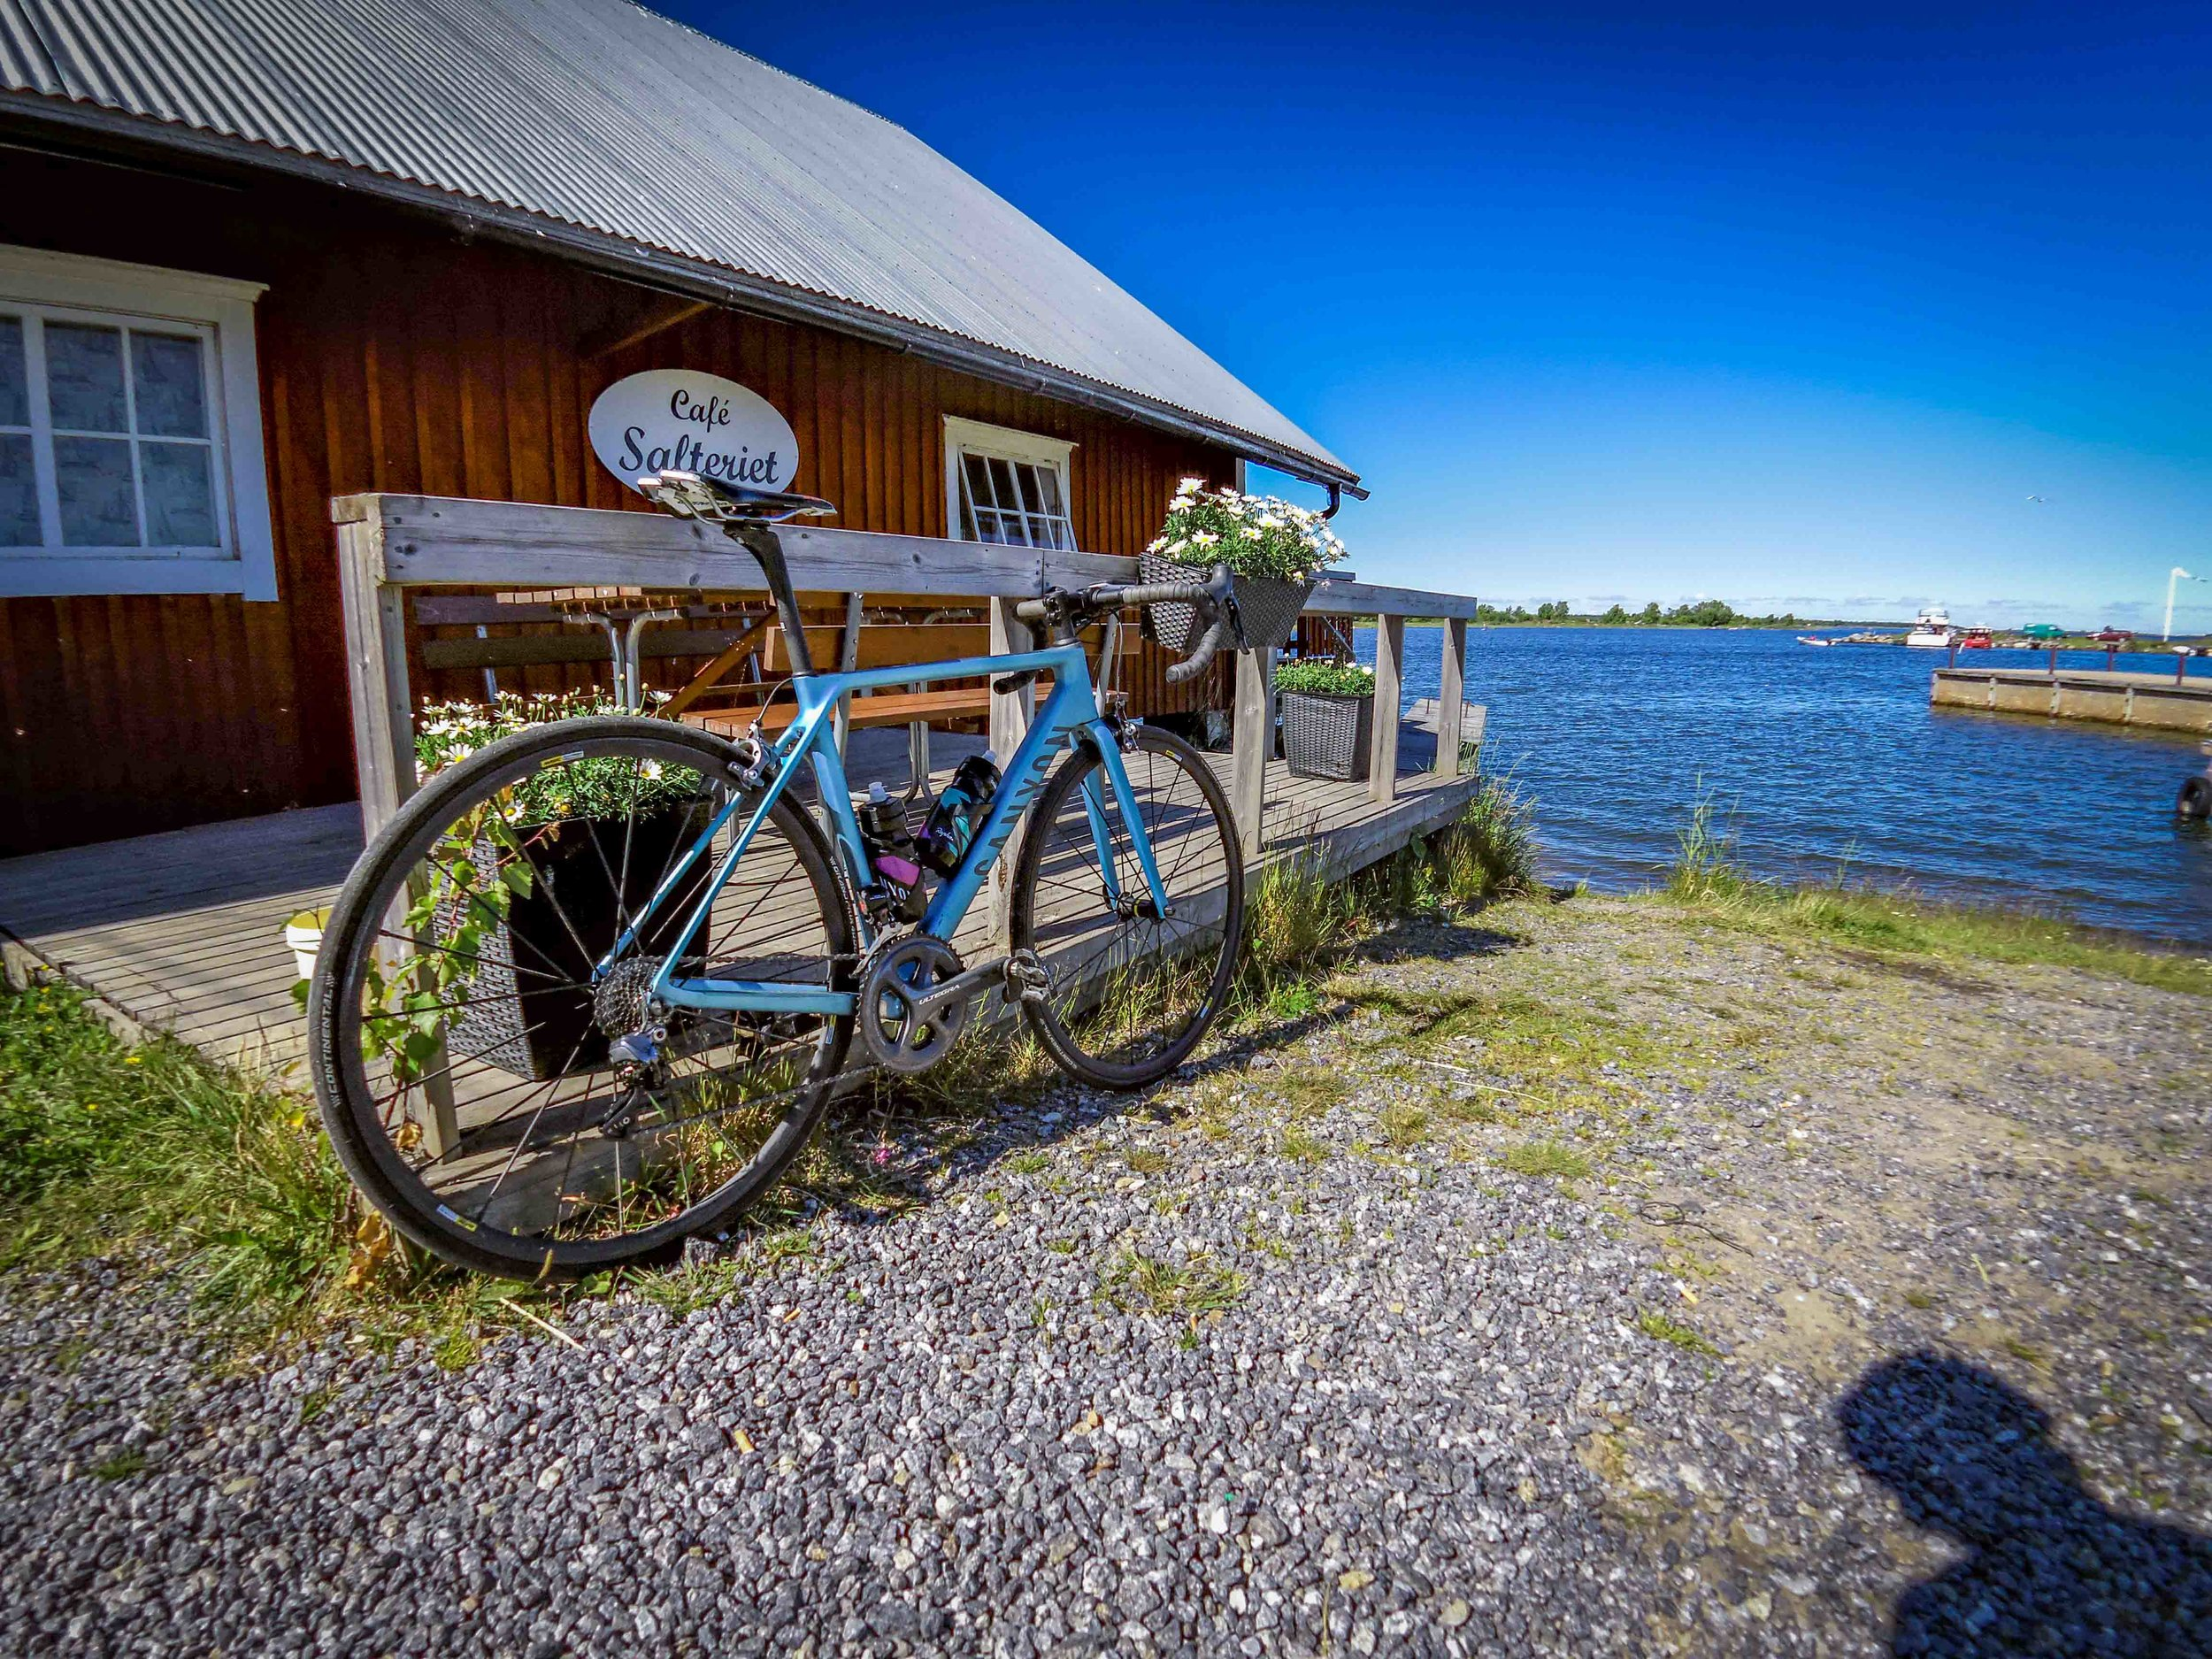 In july we took a weekend-trip to Vasa, and I had the chance to smash a great 90 km ride in superb weather.